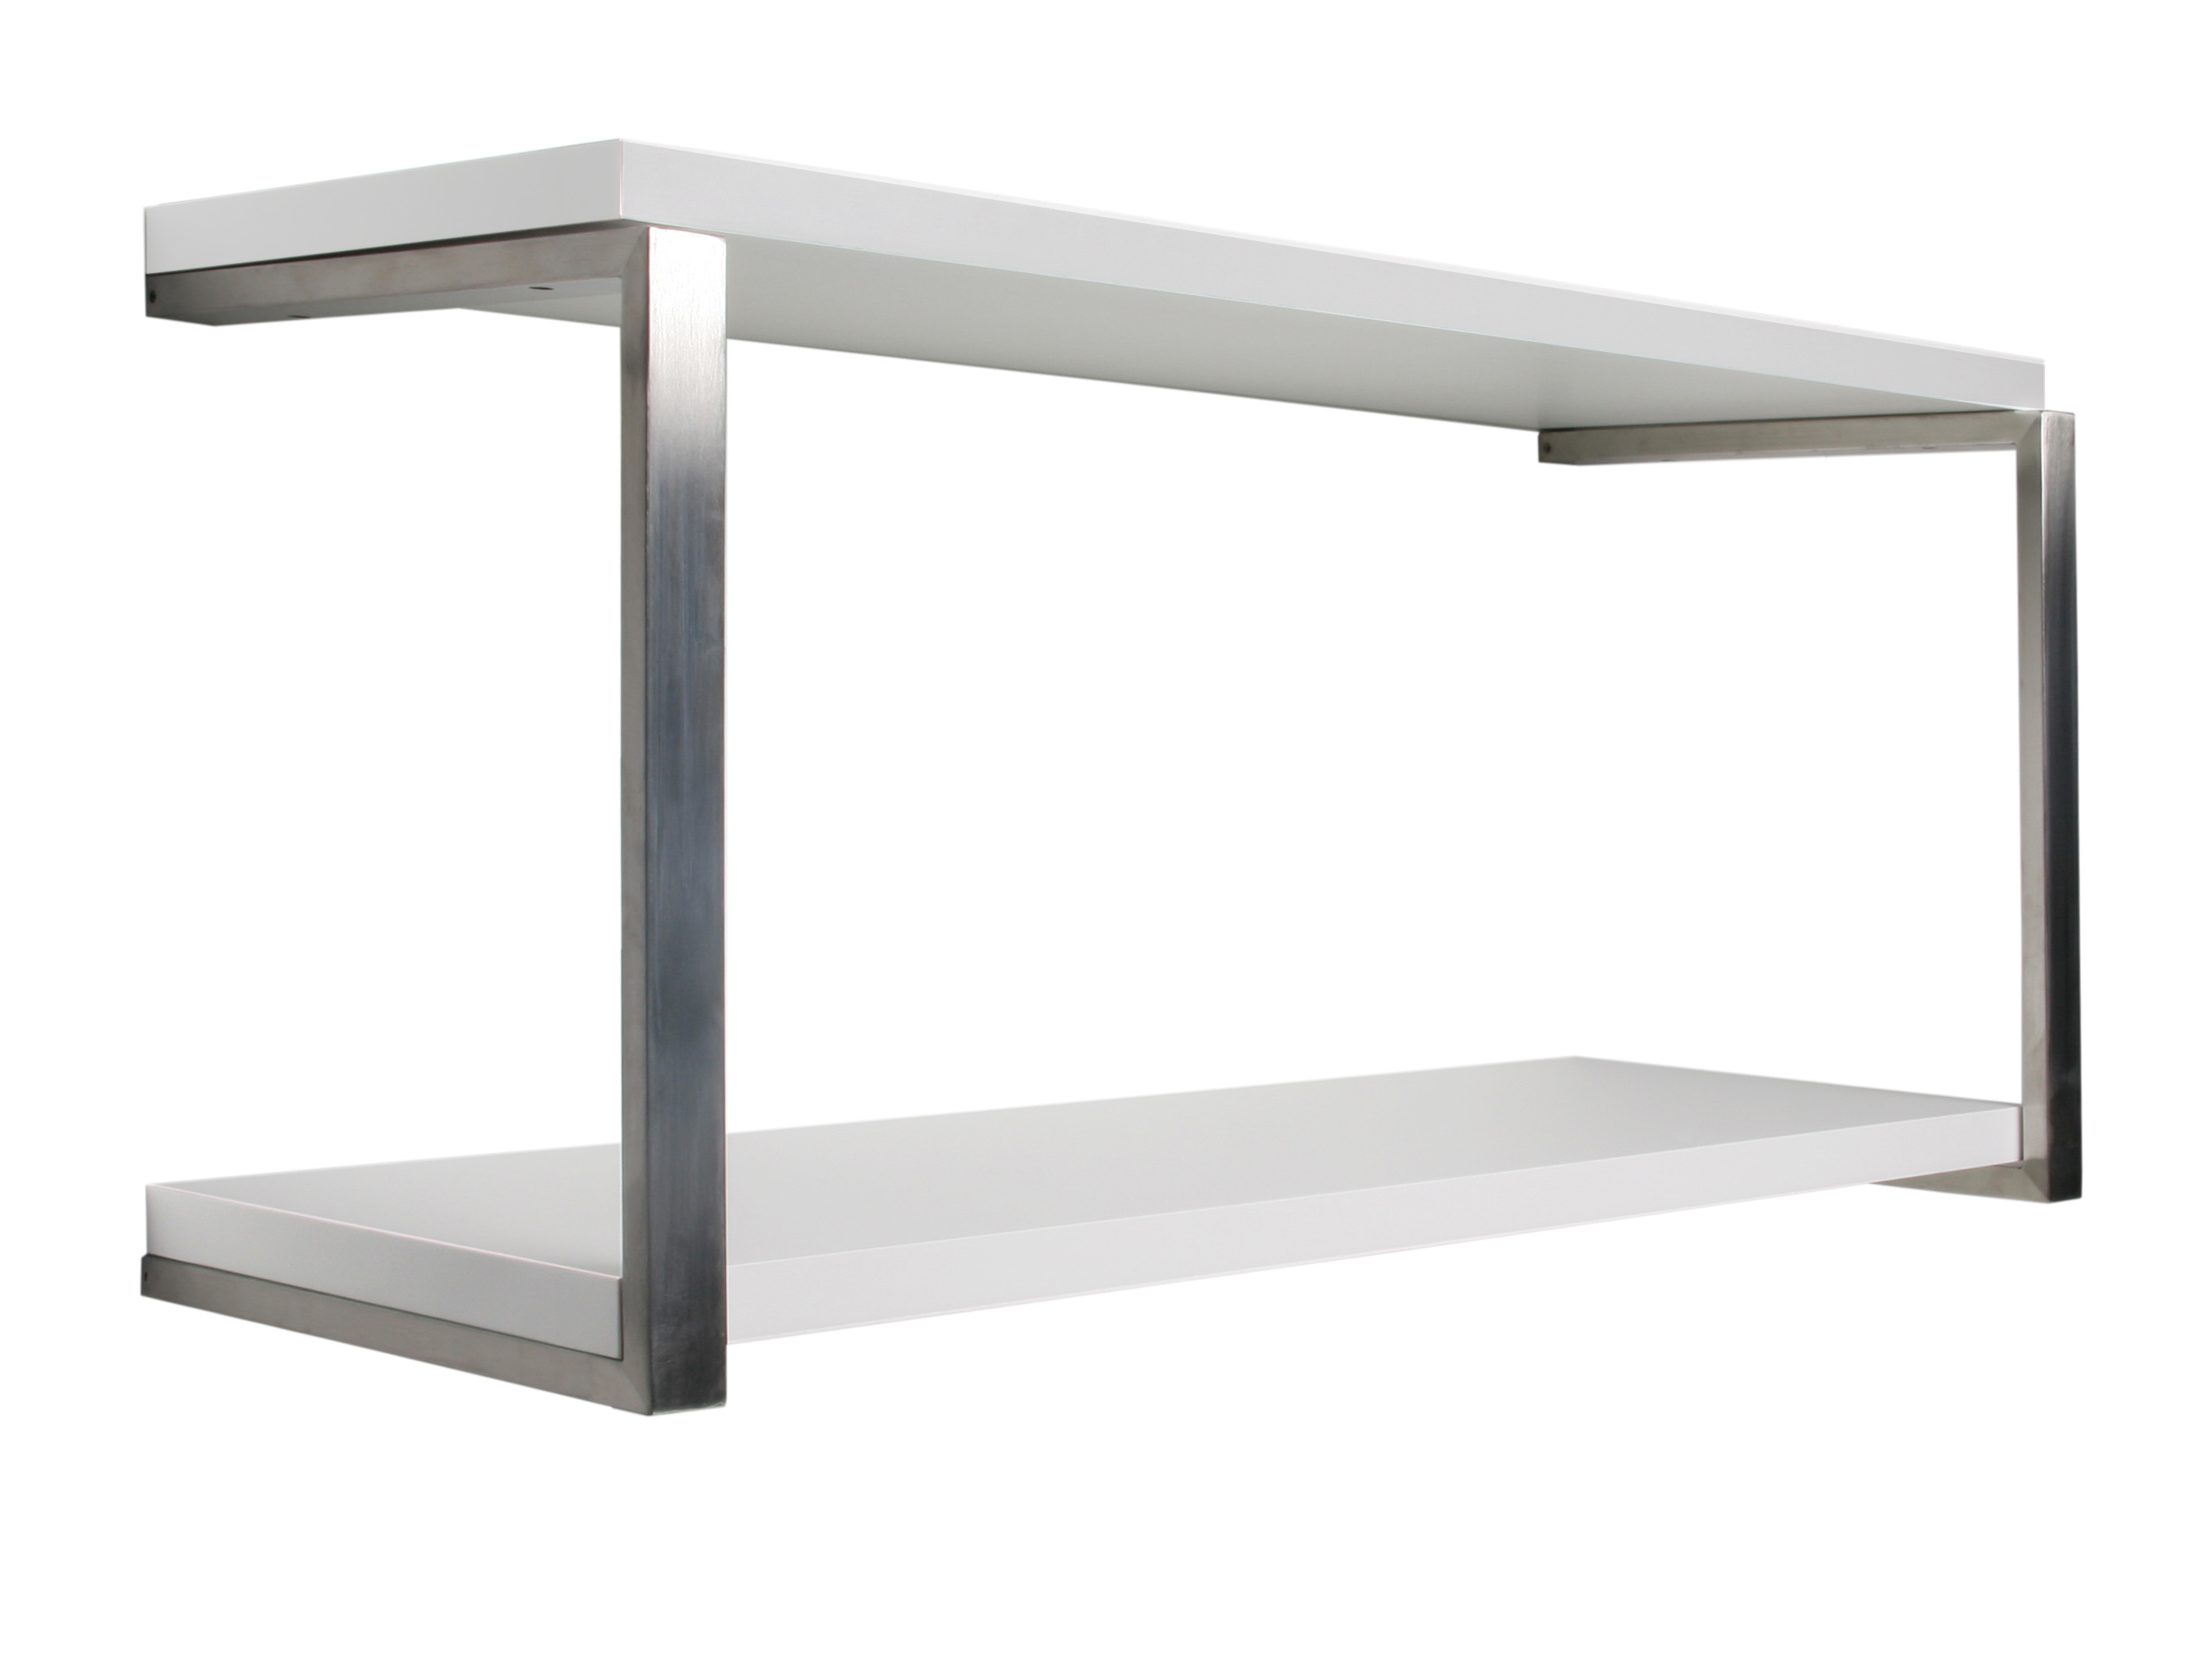 White Sumo Shelf Double Kit 800x300x25mm Mastershelf